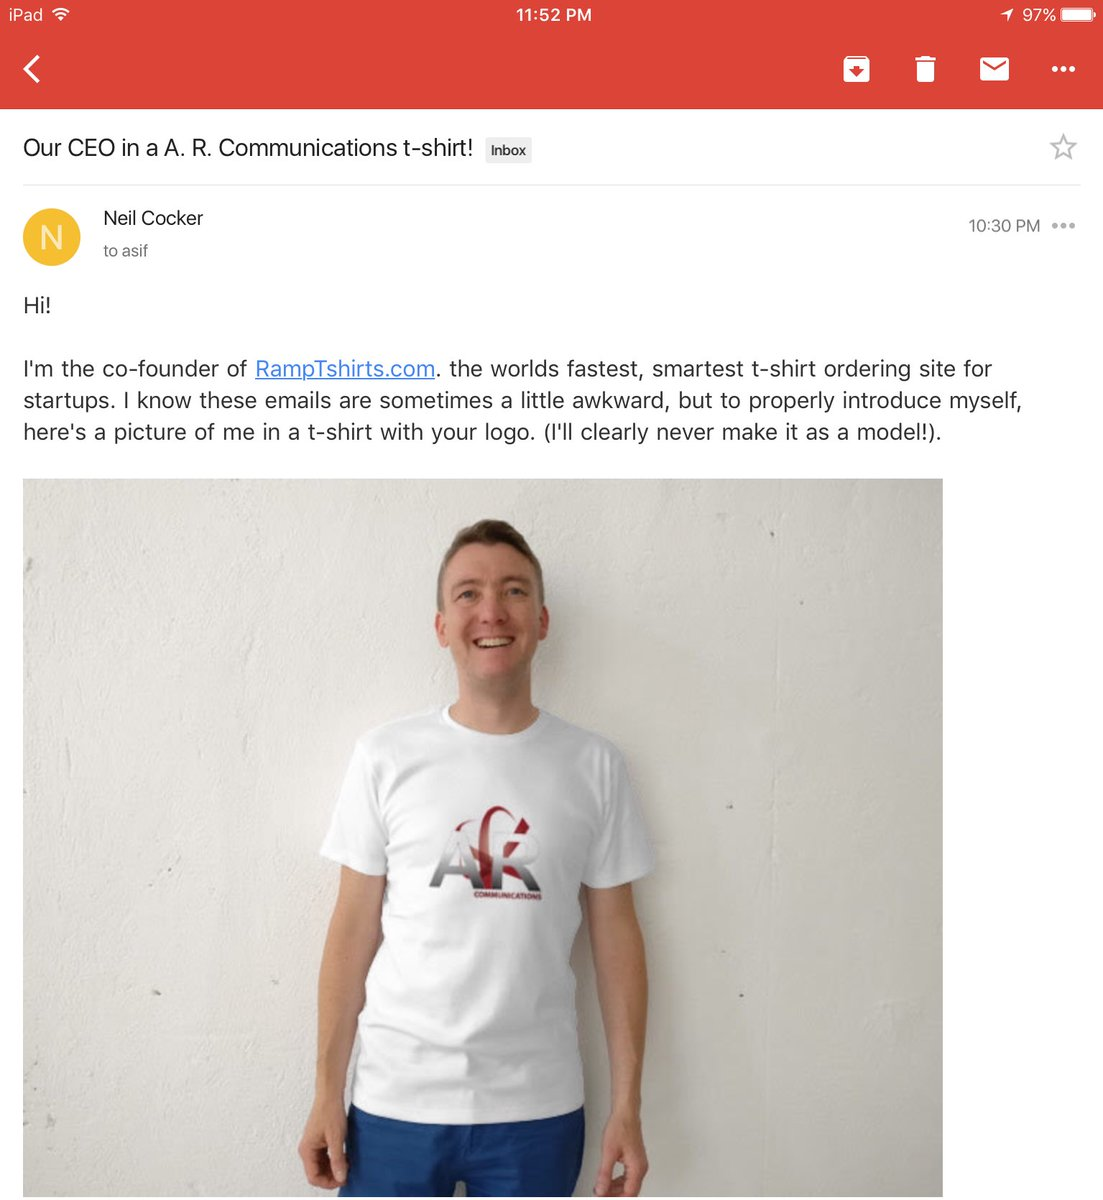 test Twitter Media - Email marketing to a whole new level by @RampTshirts! CC: @NeilCocker @ARComCo #Email #EmailMarketing #Startup #Marketing #Hustle #TShirt https://t.co/4FLck0Fj7u